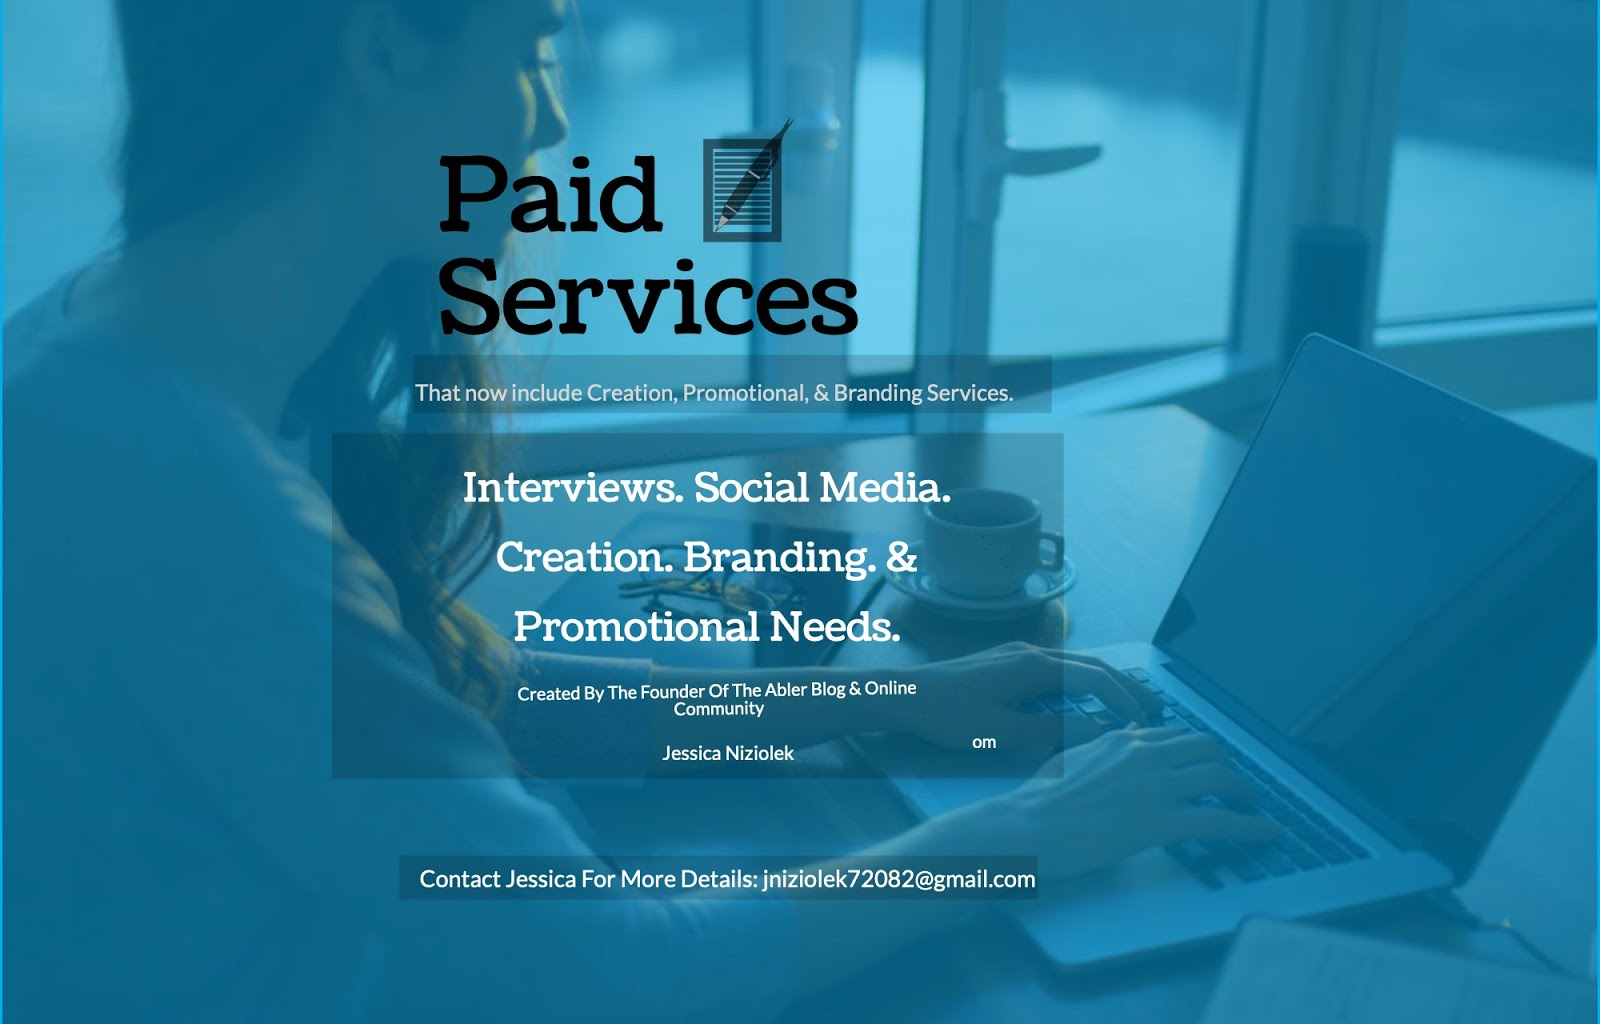 Paid Services